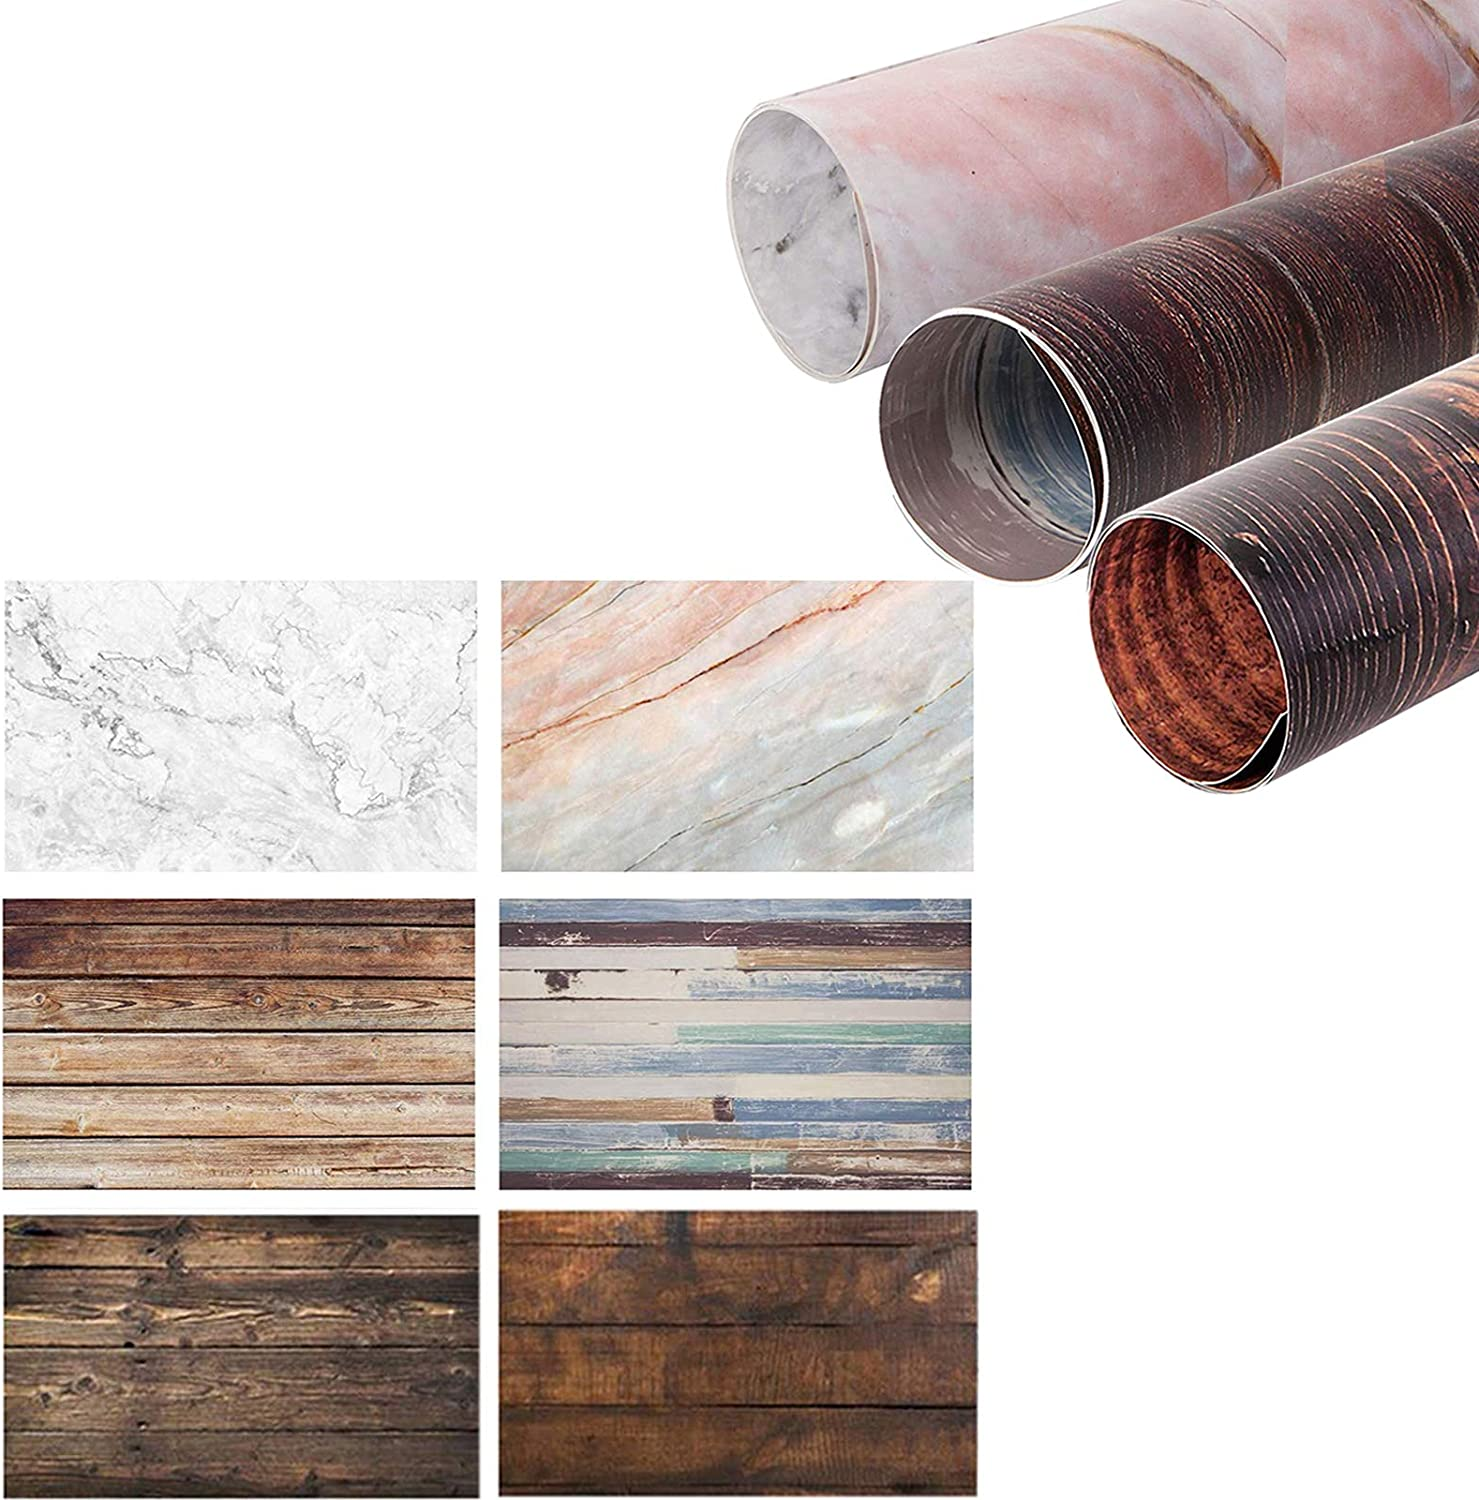 Selens 2-in-1 Marble Backdrop Wood Backdrop, 22x35Inch Flat Lay Food Photography Background Waterproof Tabletop Paper Props for Jewelry Cosmetics Makeup Small Product Photography—3 Pack